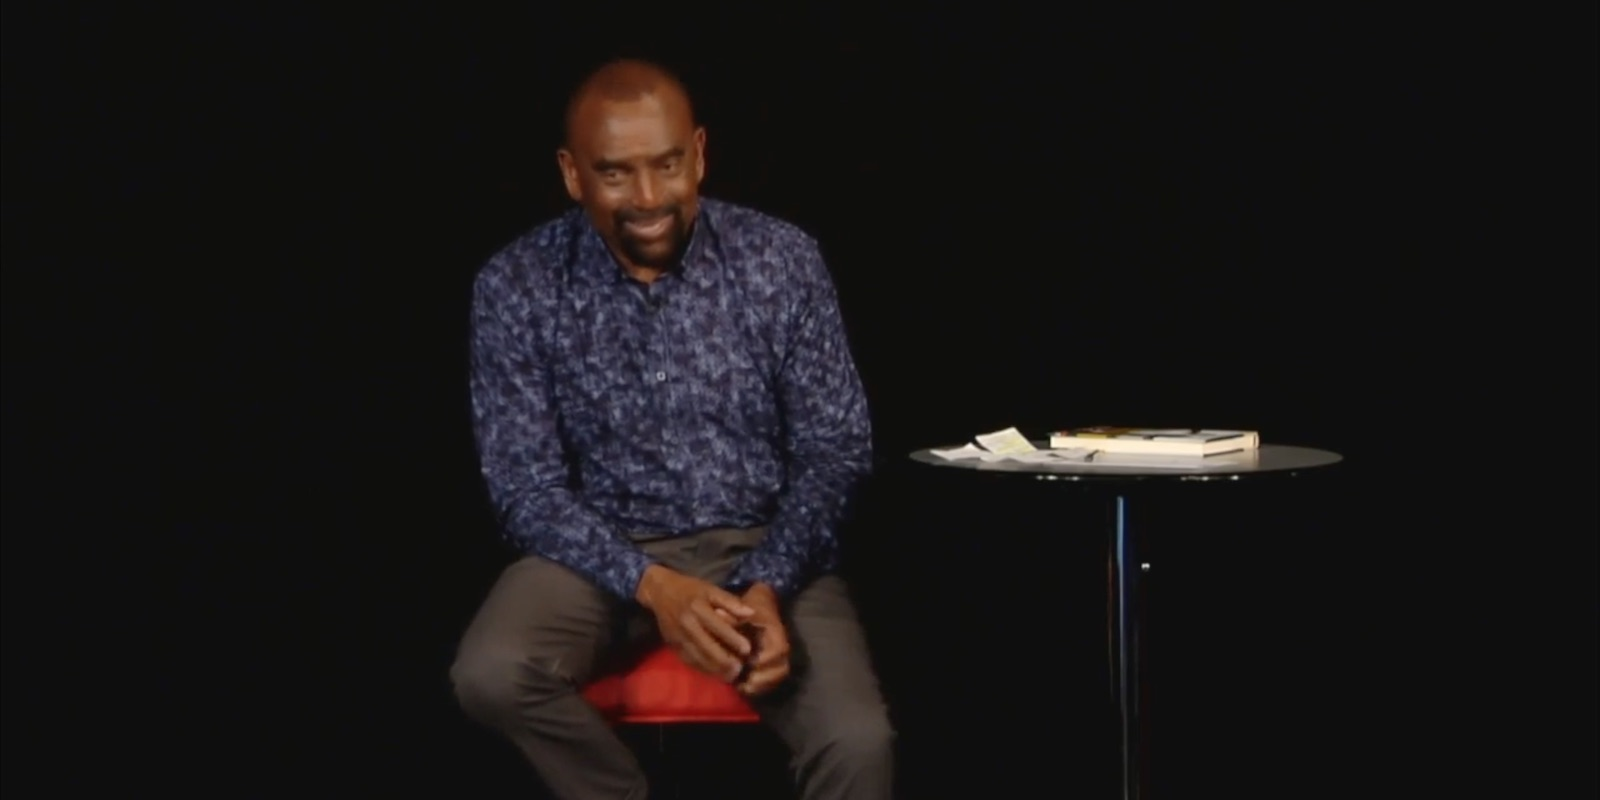 Jesse laughs while talking with the Church congregation